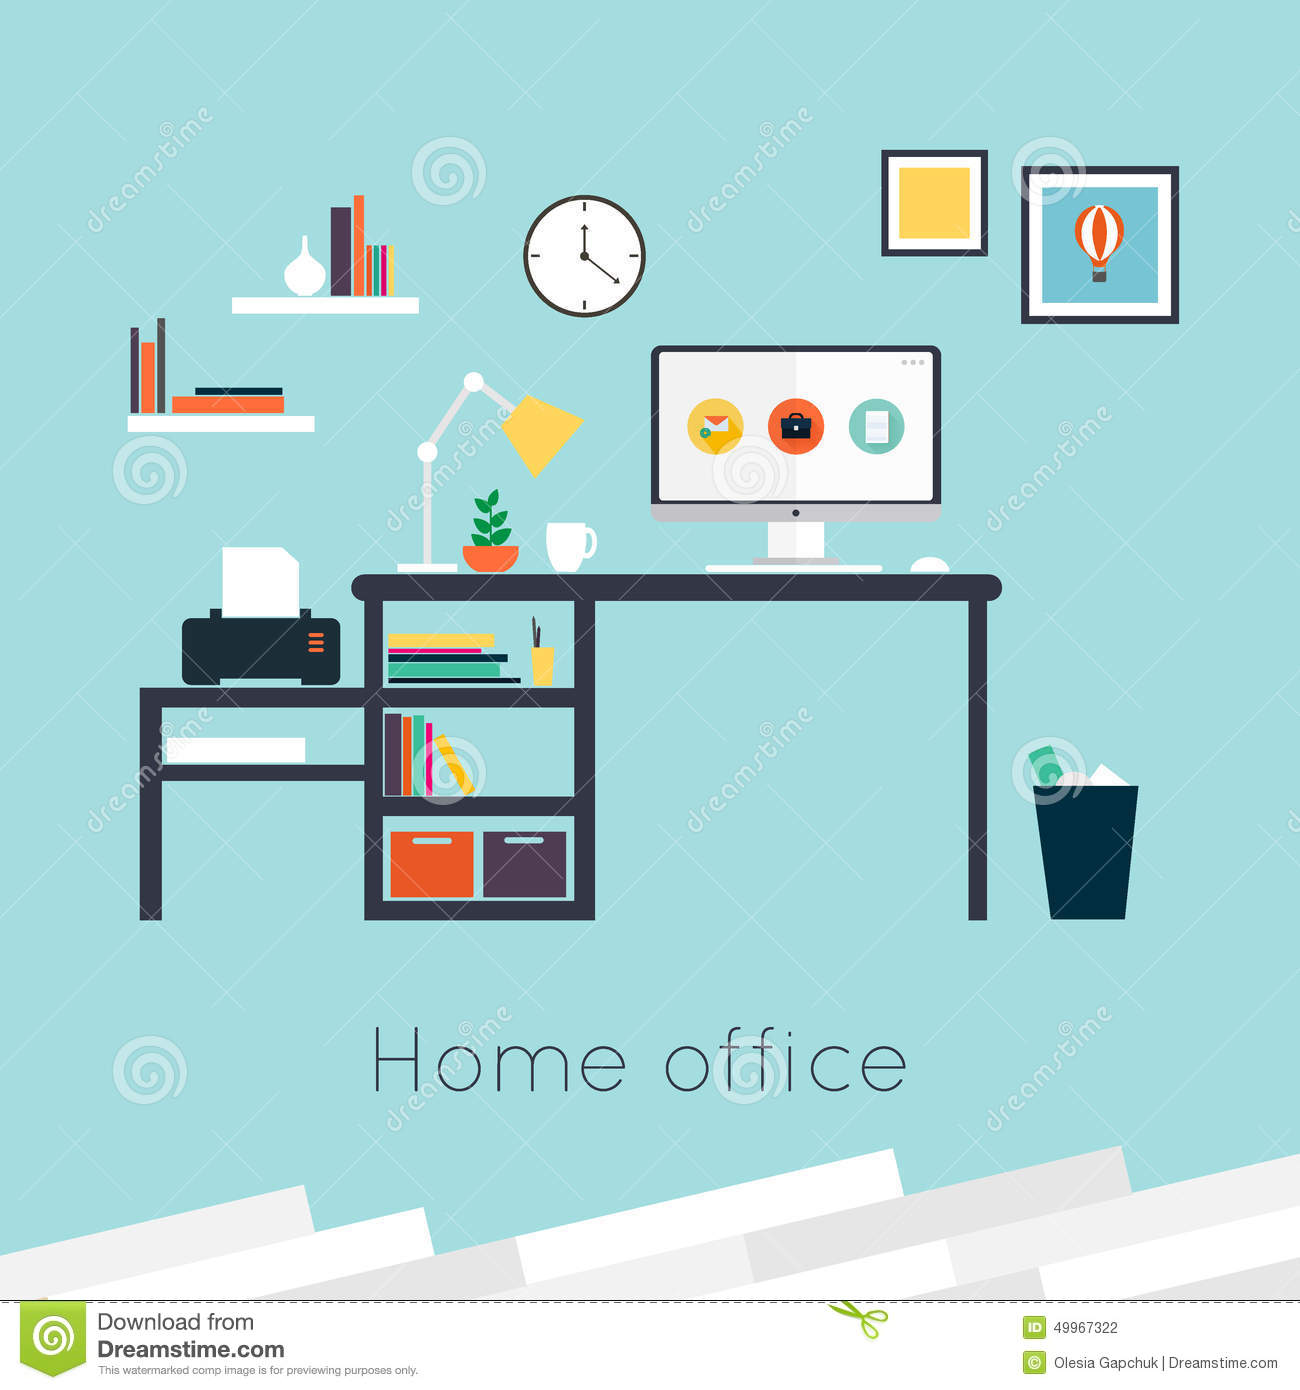 Home office stock vector image 49967322 for Office design vector